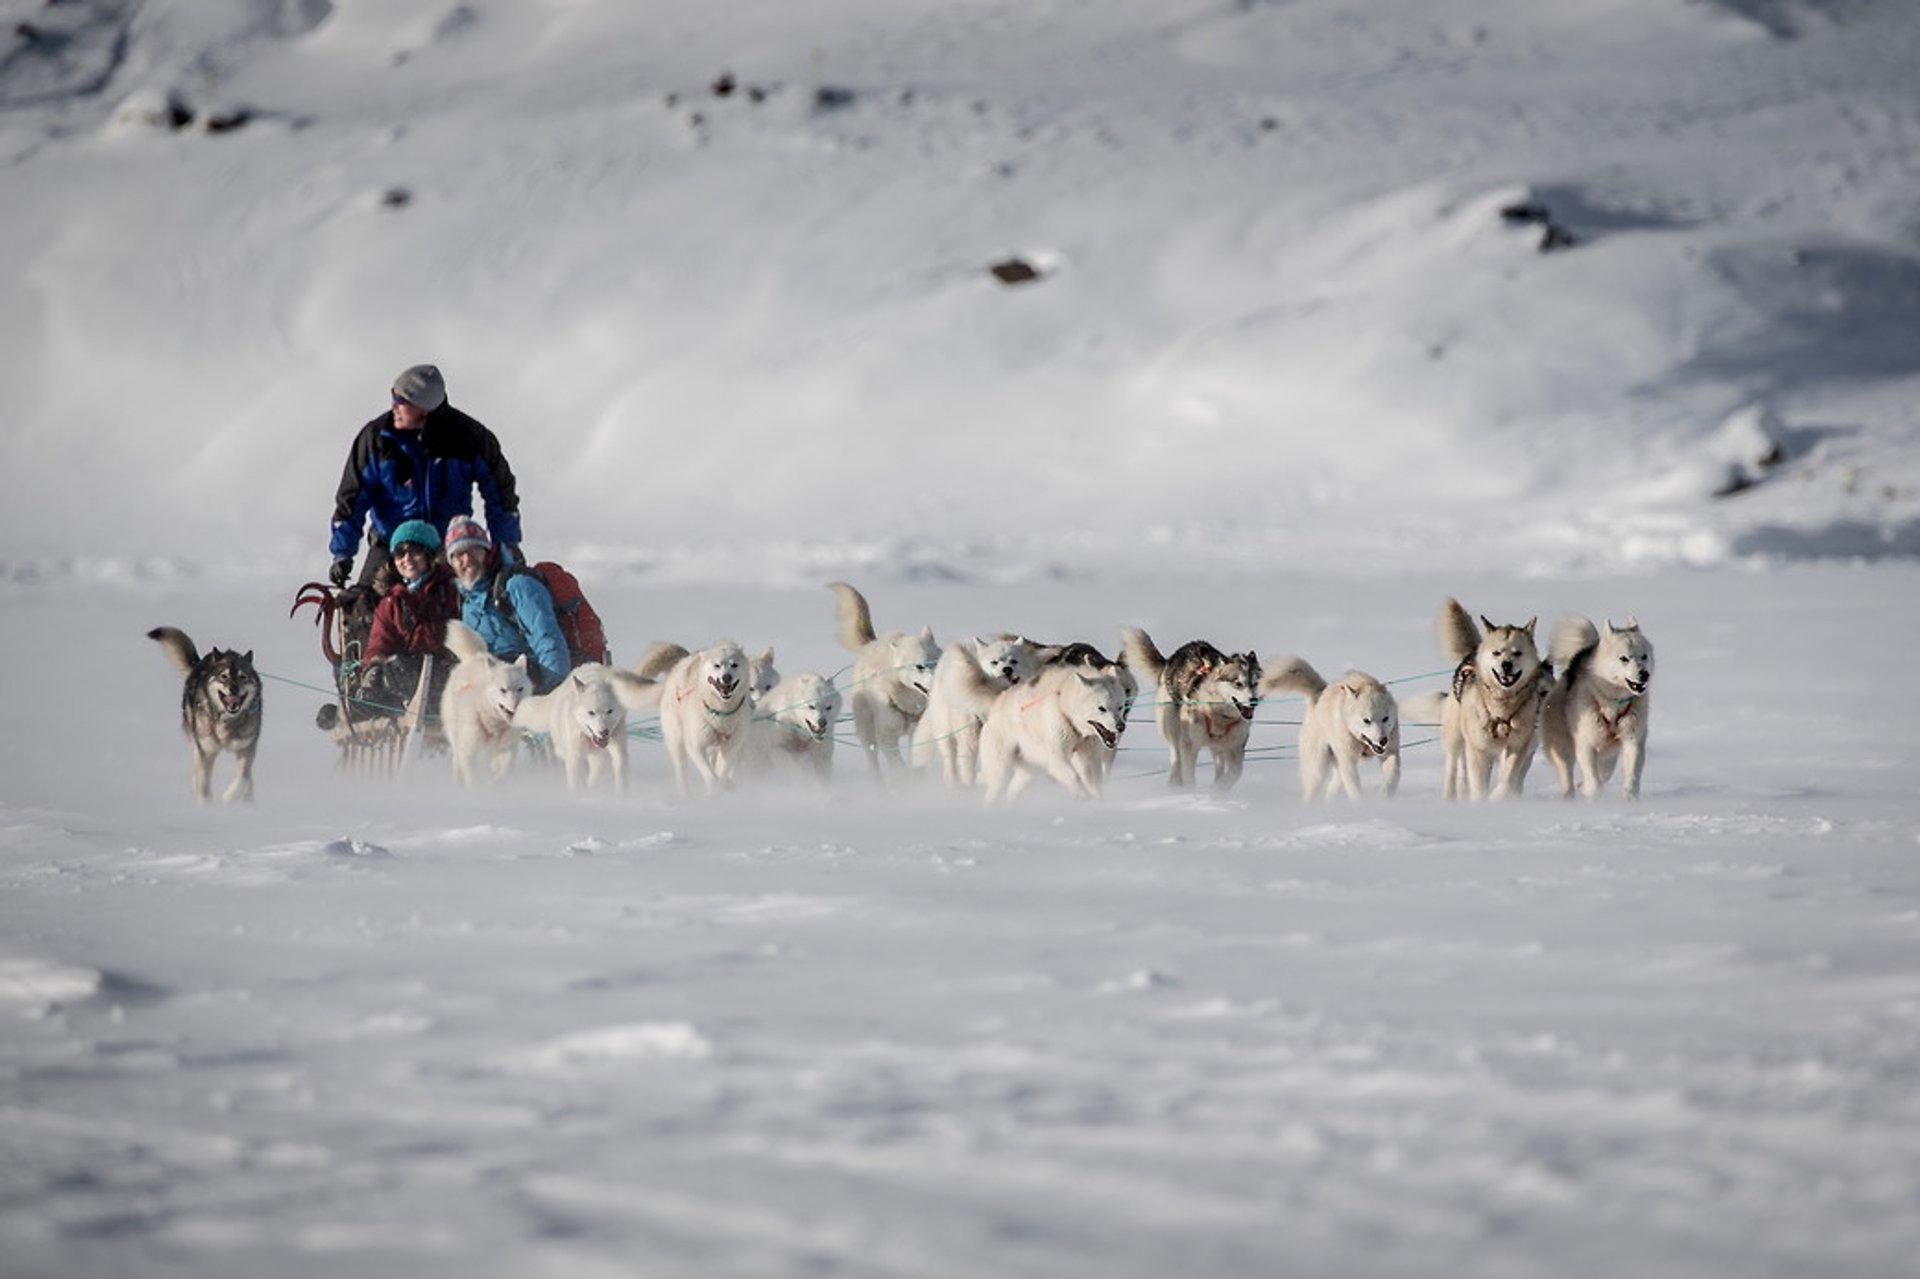 Dog Sledding in Greenland 2019 - Best Time